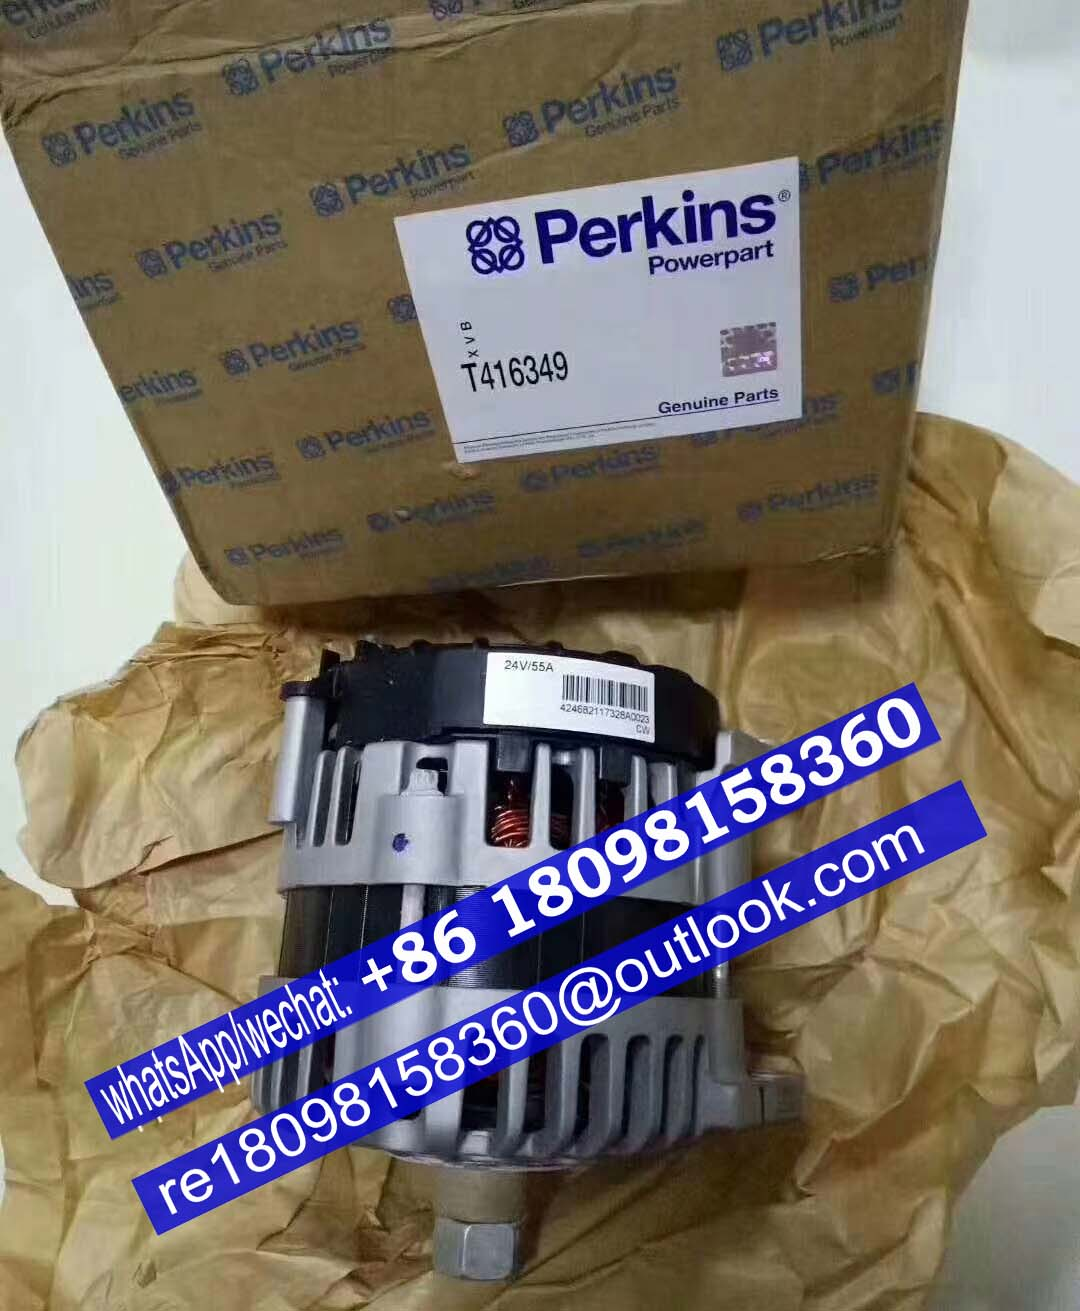 2871A306 T416349 T416234 perkins Alternator for 1106 engine parts